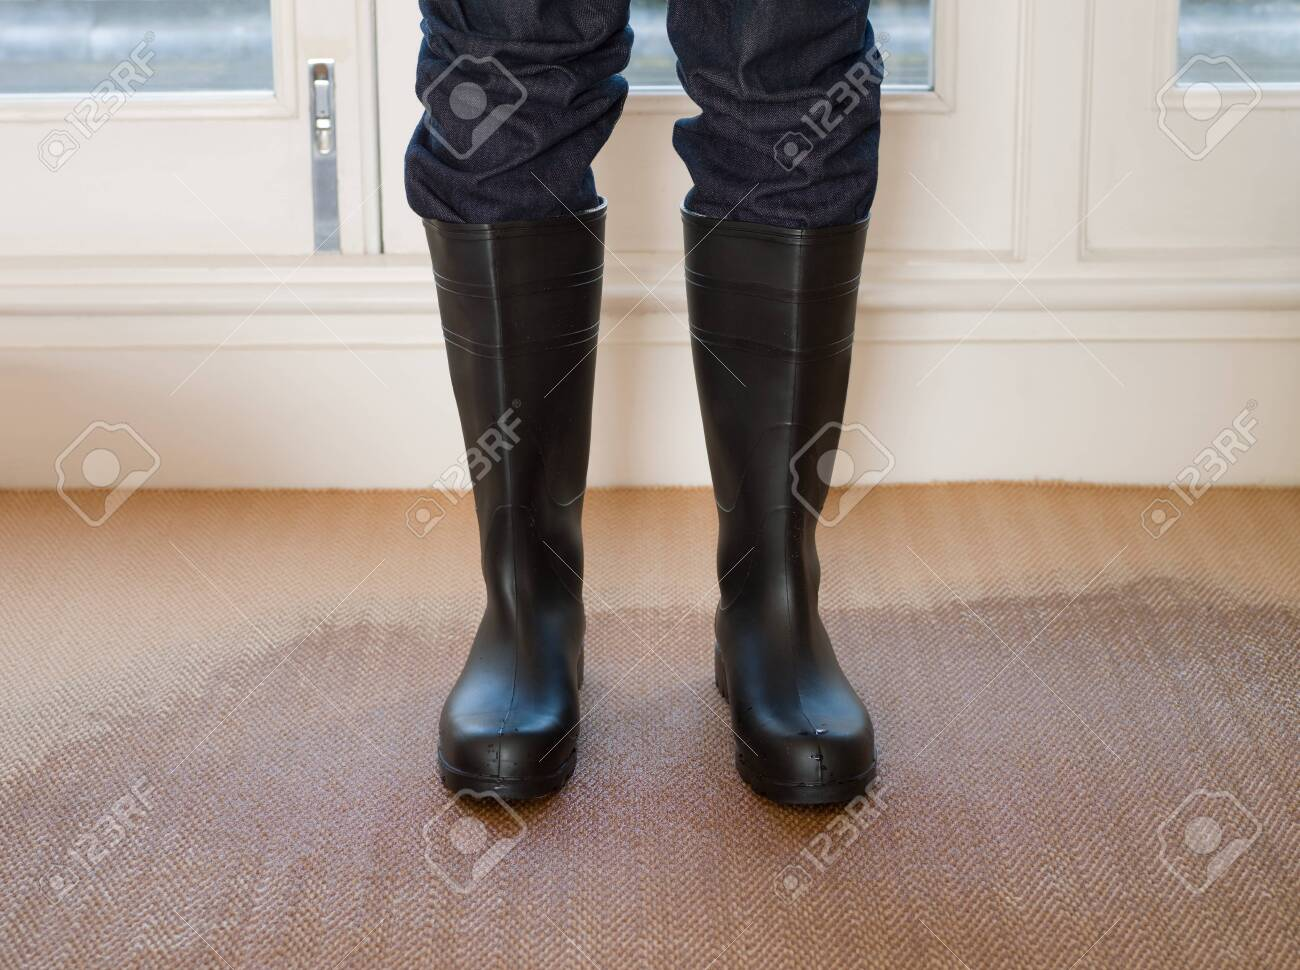 Person wearing rubber boots on a wet carpet - 129131422